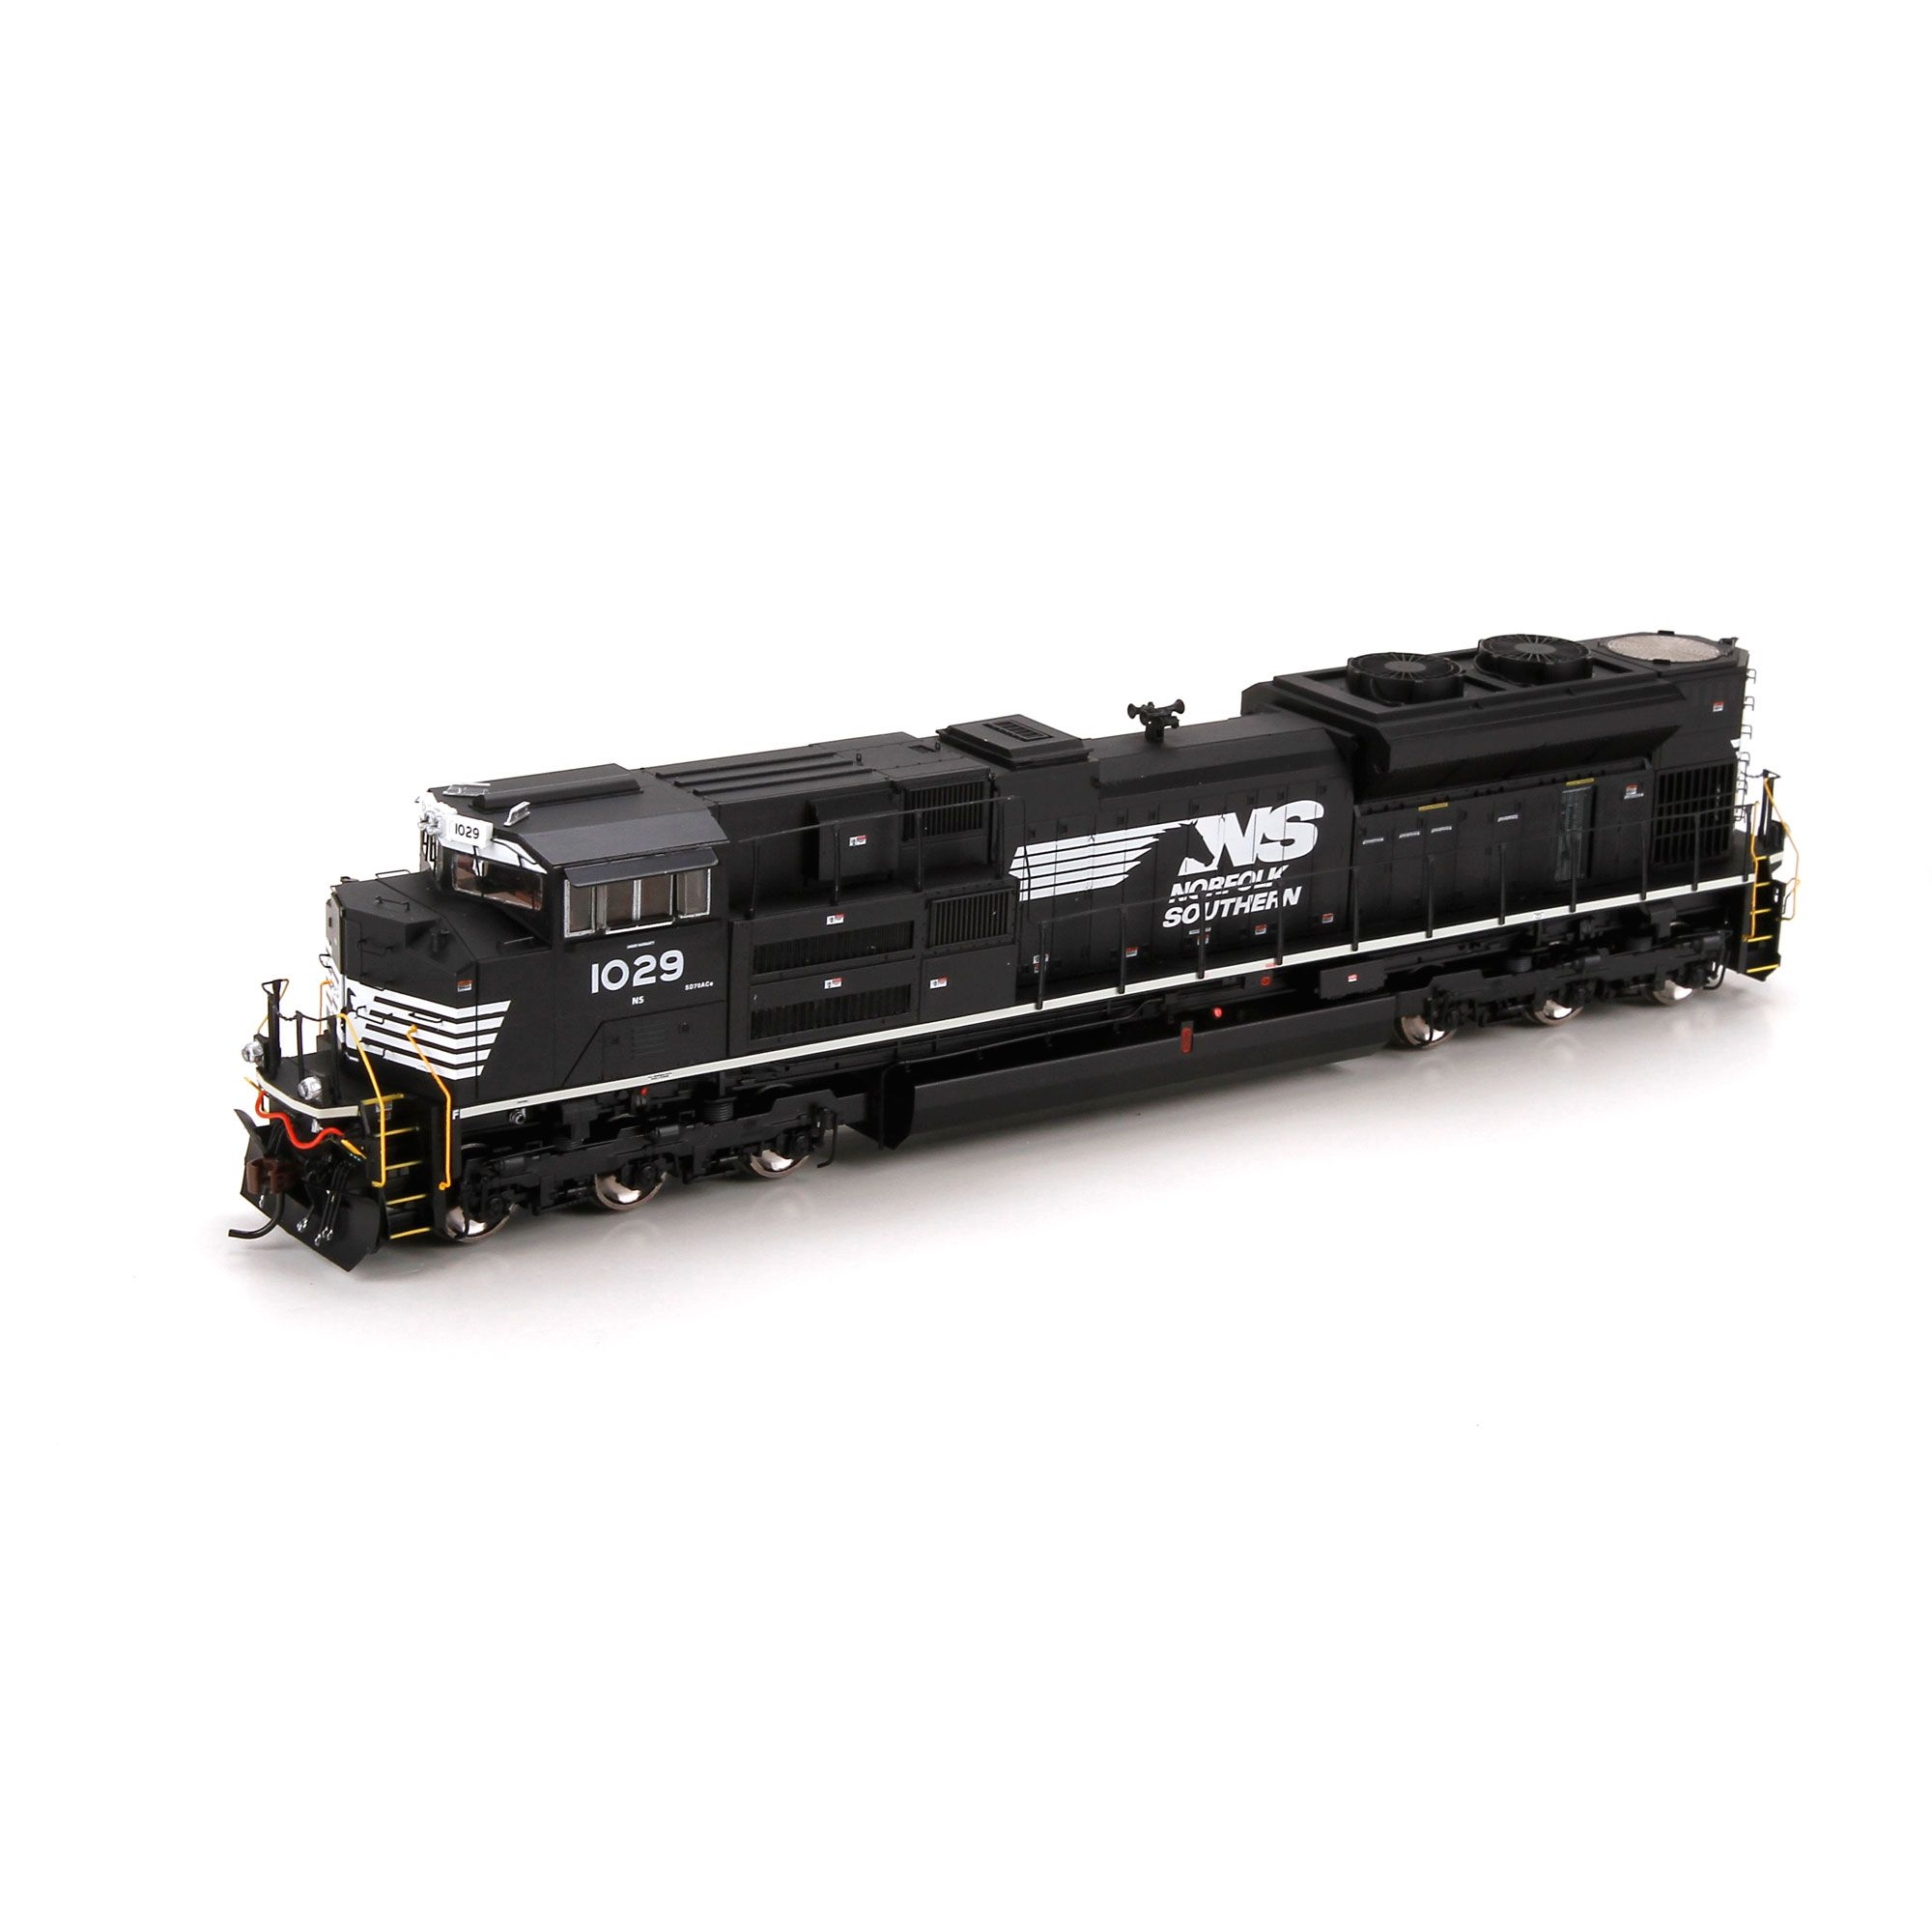 HO SD70ACe W/DCC & Sound, NS/Horsehead #1029 (ATHG68819